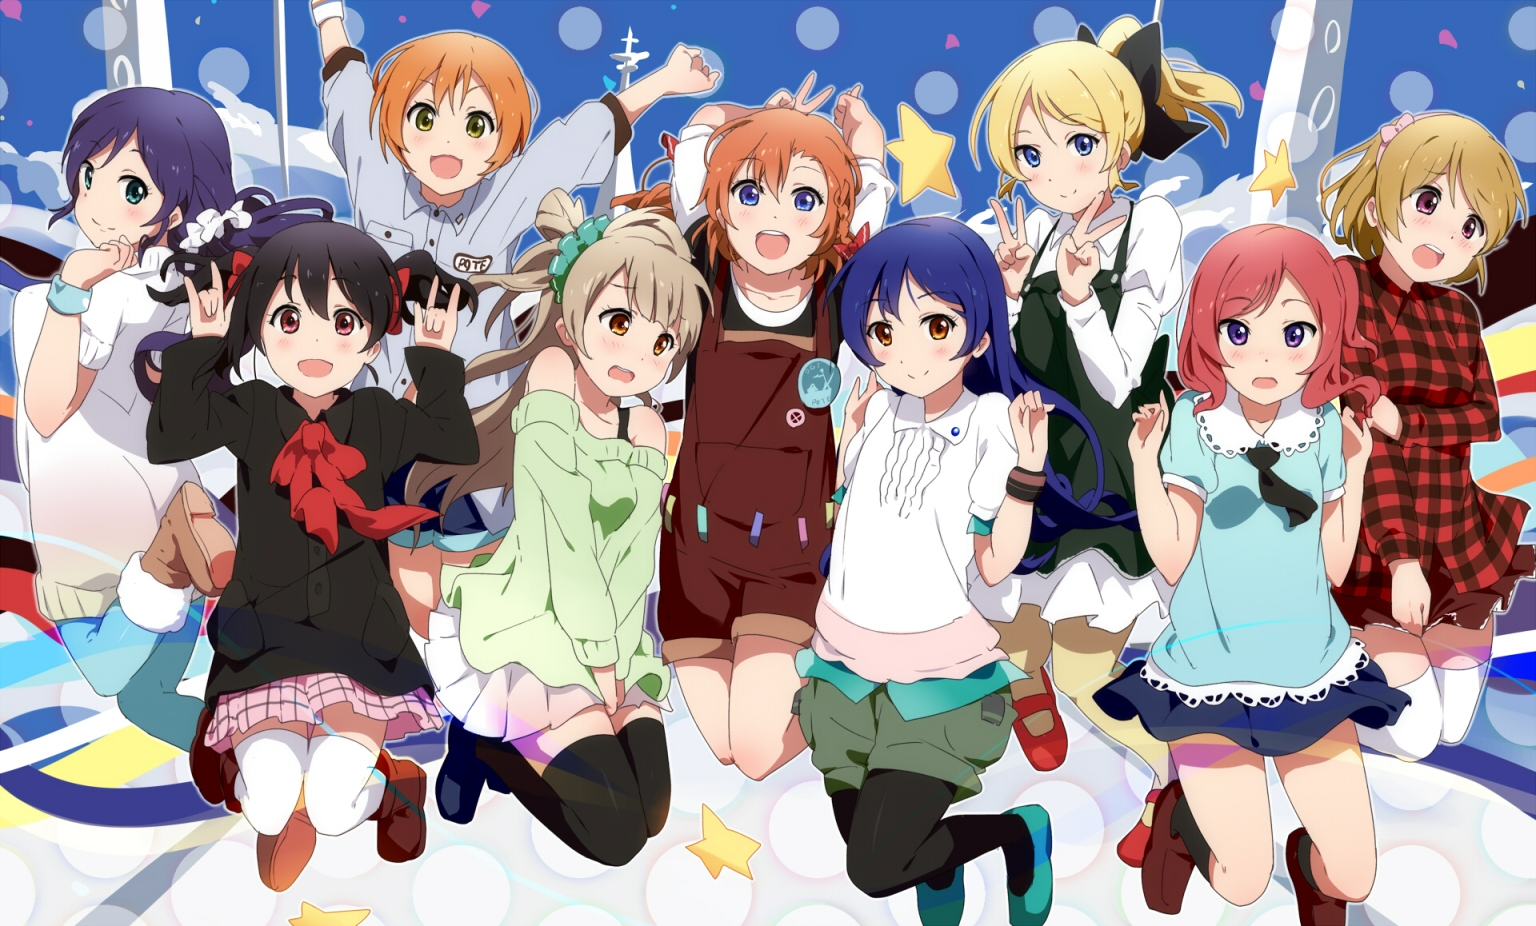 Love Live Wallpaper Hd For Pc : ?? : ????????? ?? ????Pc???????? - NAVER ???